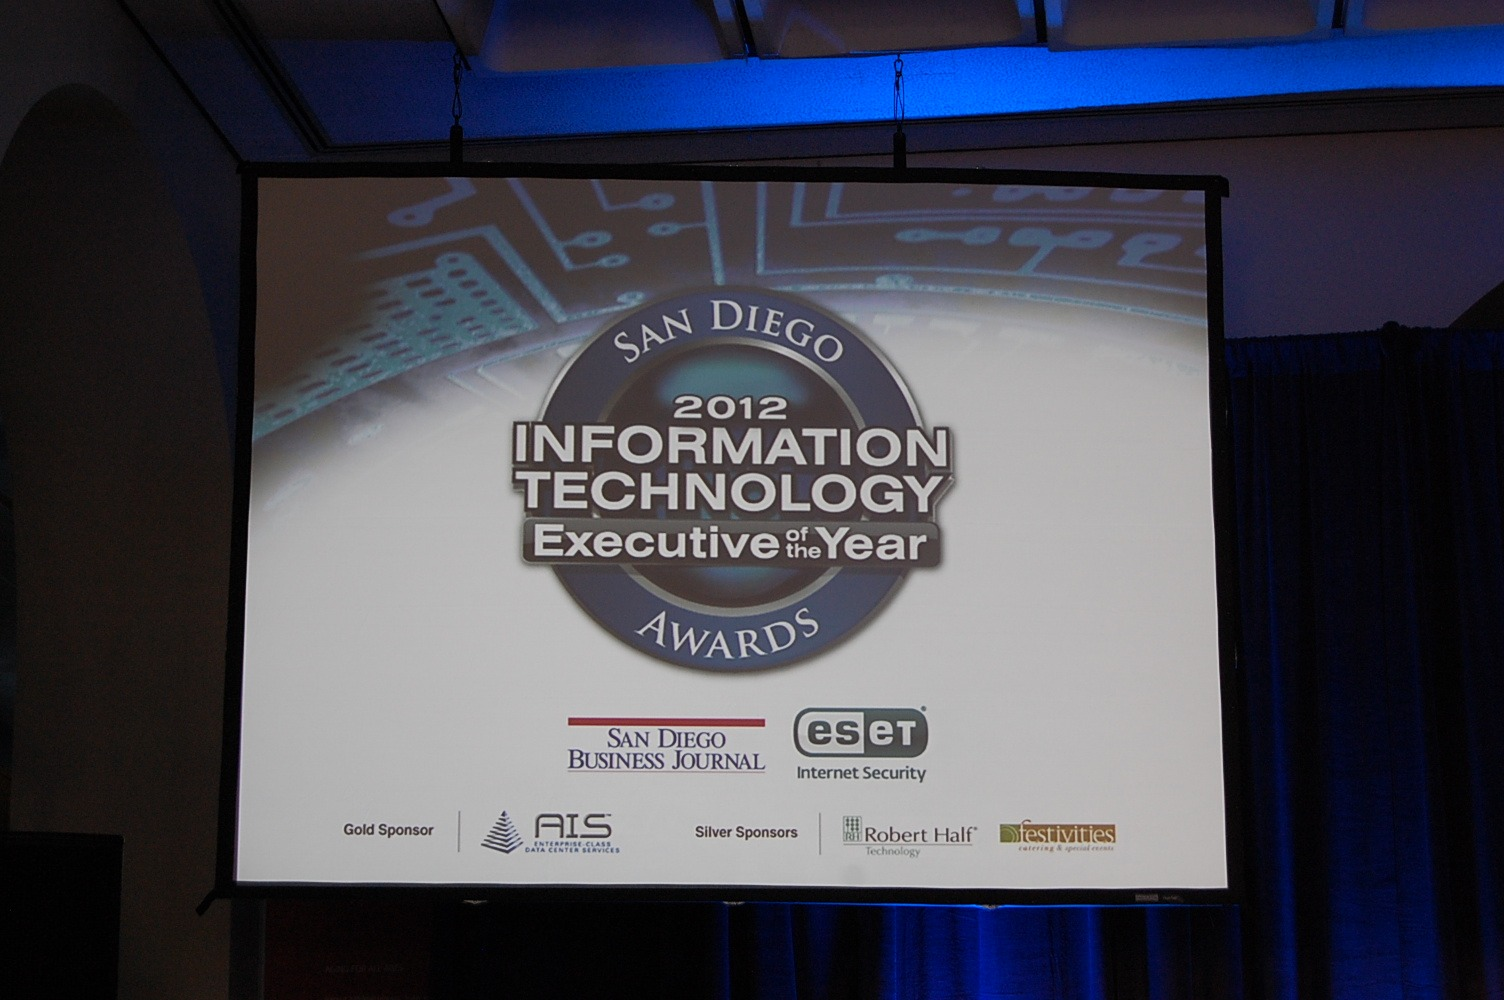 2012 Information Technology Executive of the Year